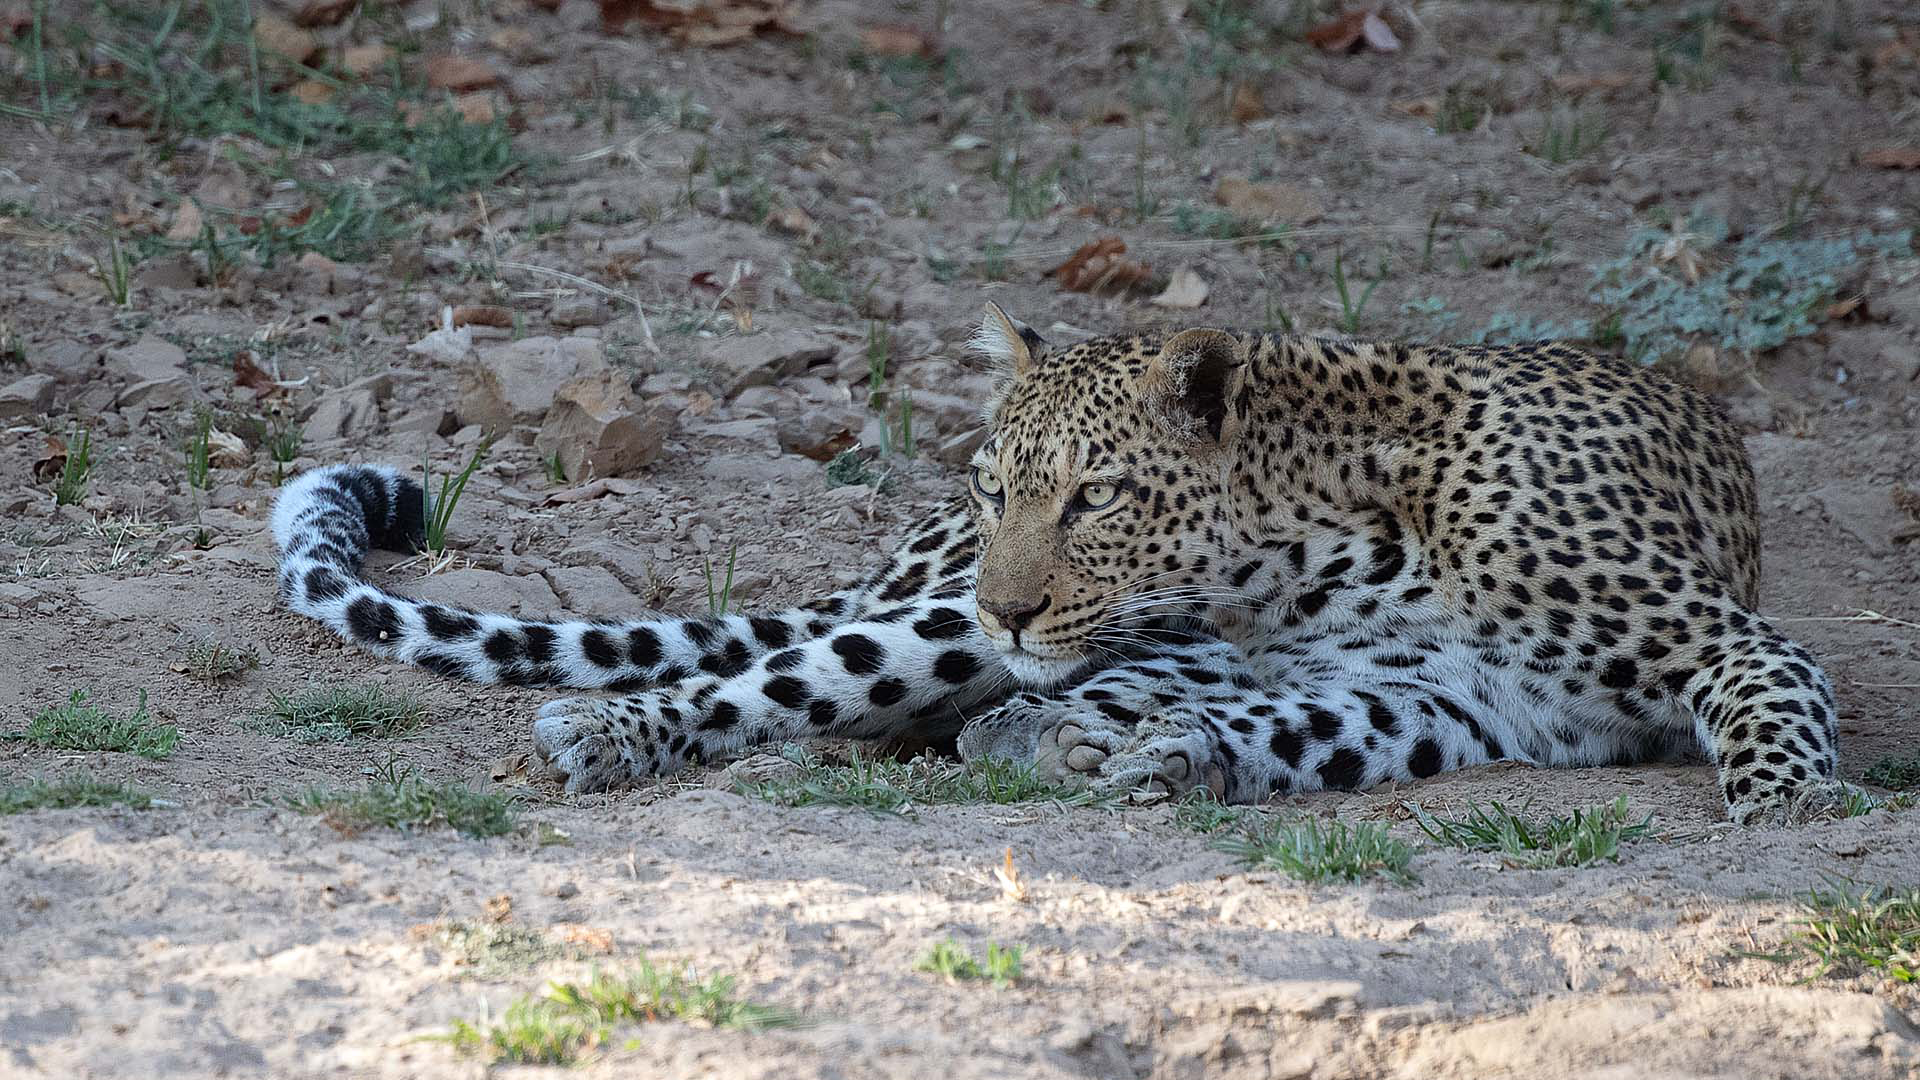 tanzania wildlife leopard lying on earth